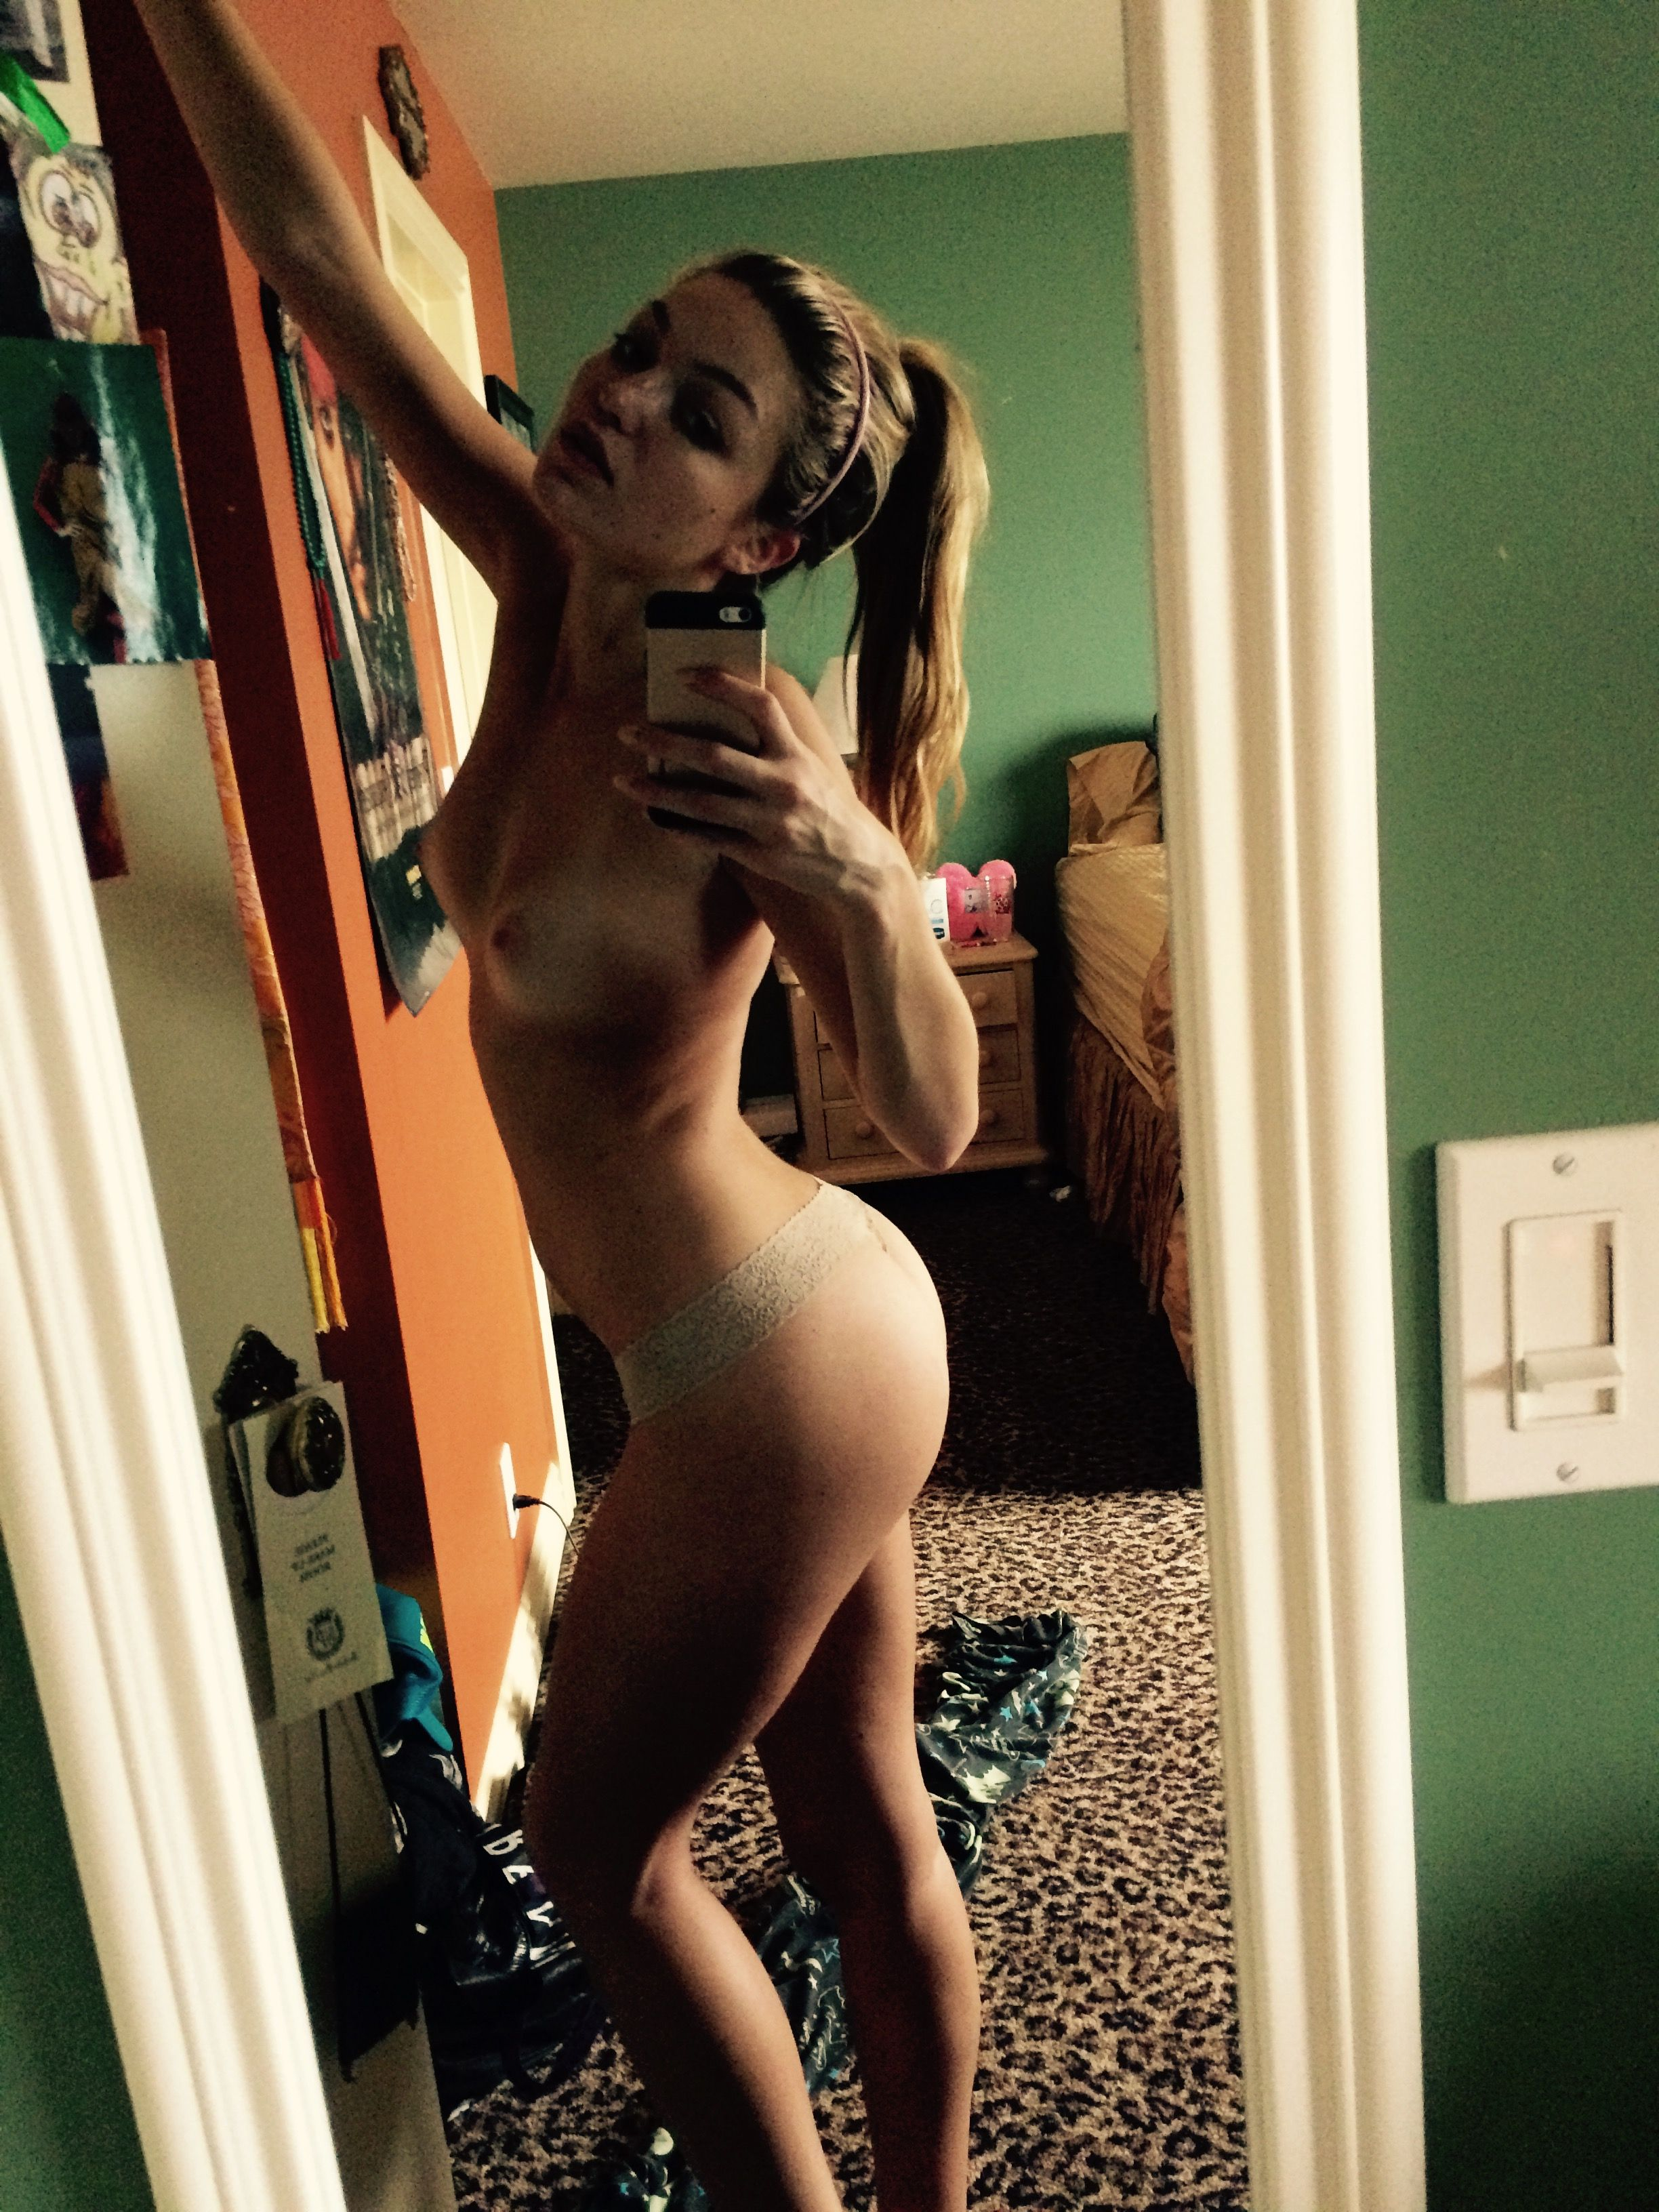 Lili-Simmons-Leaked-38-thefappening.nu_d3d6d.jpg